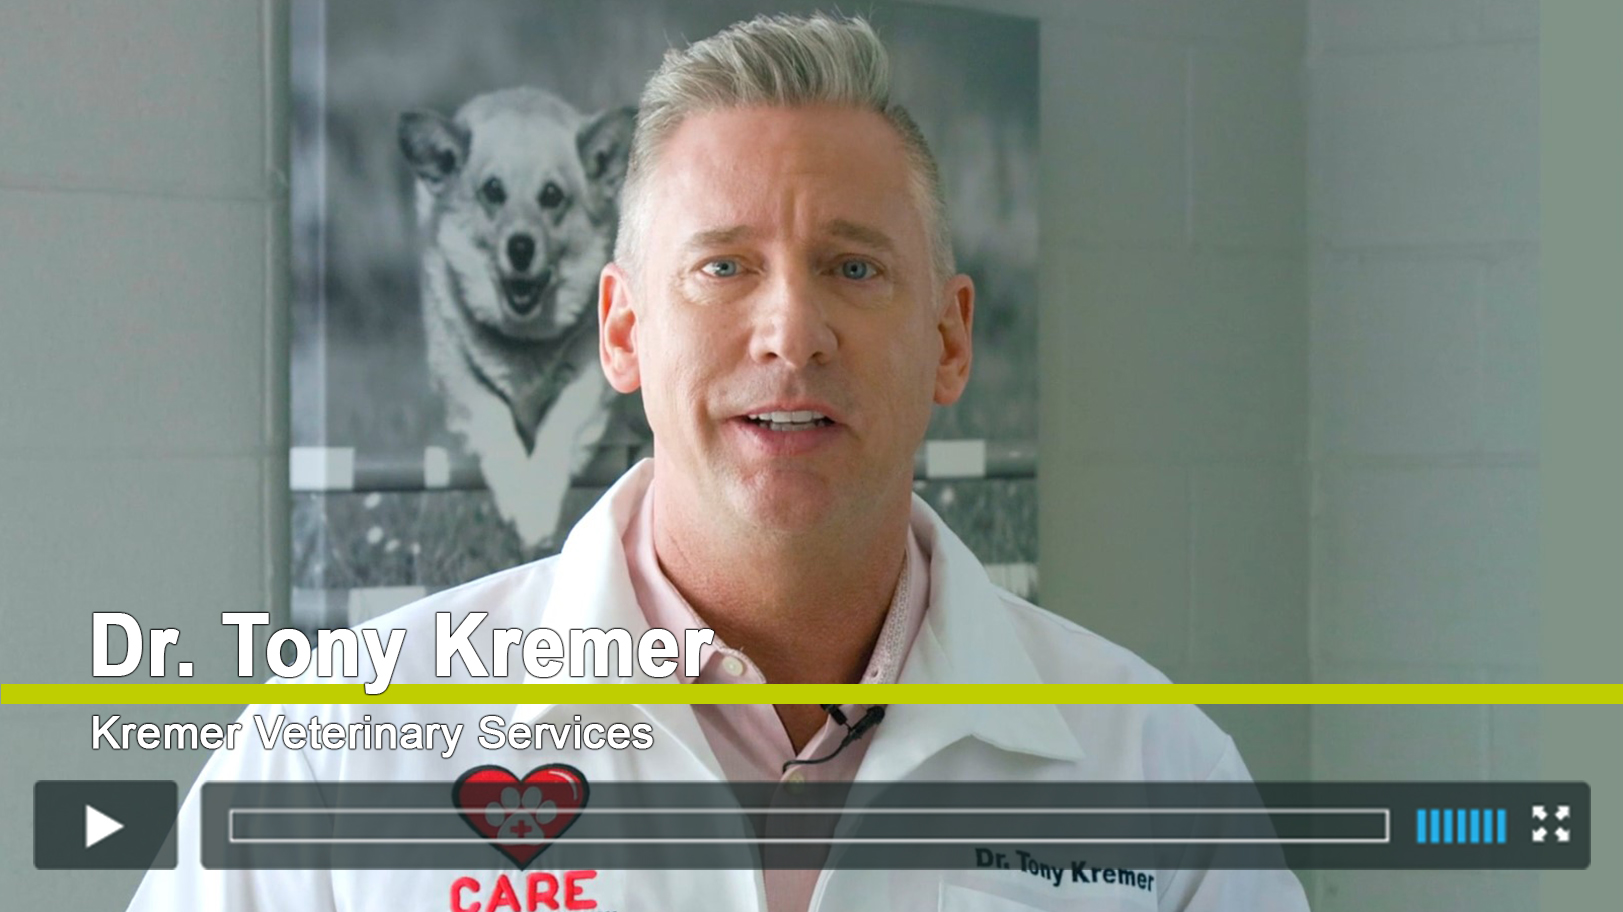 Vimeo - Dr Tony Kremer - Wound Healing Post Surgery Care and Rehabilitation with Laser Treatments